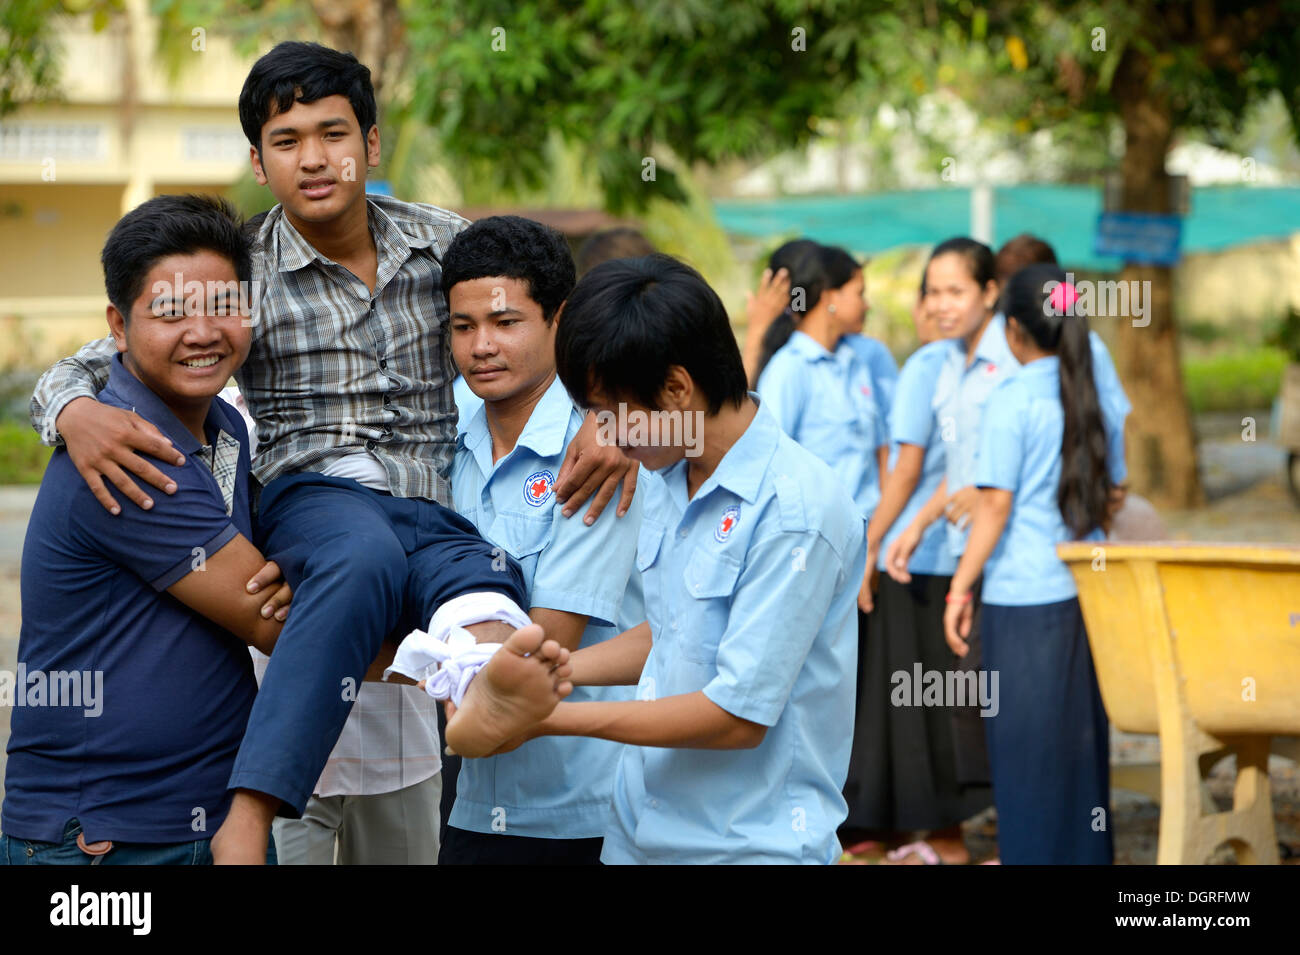 Cambodia, Takeo Province, Young people at first aid training - Stock Image